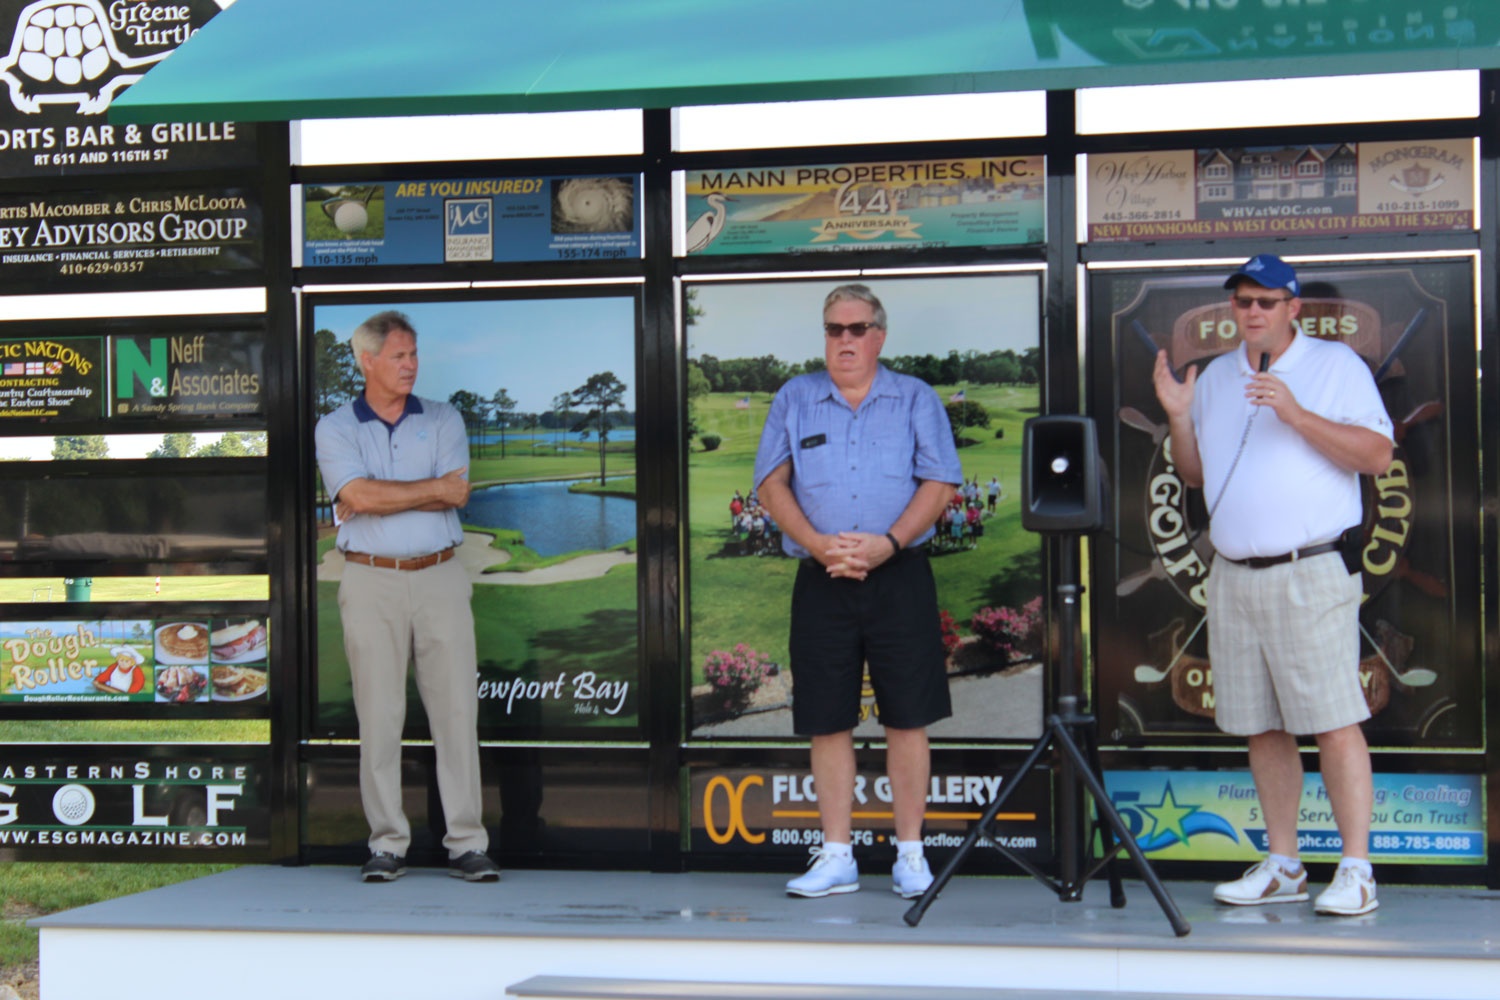 Chesapeake Health Care 6th Annual Golf Tournament gallery image #2